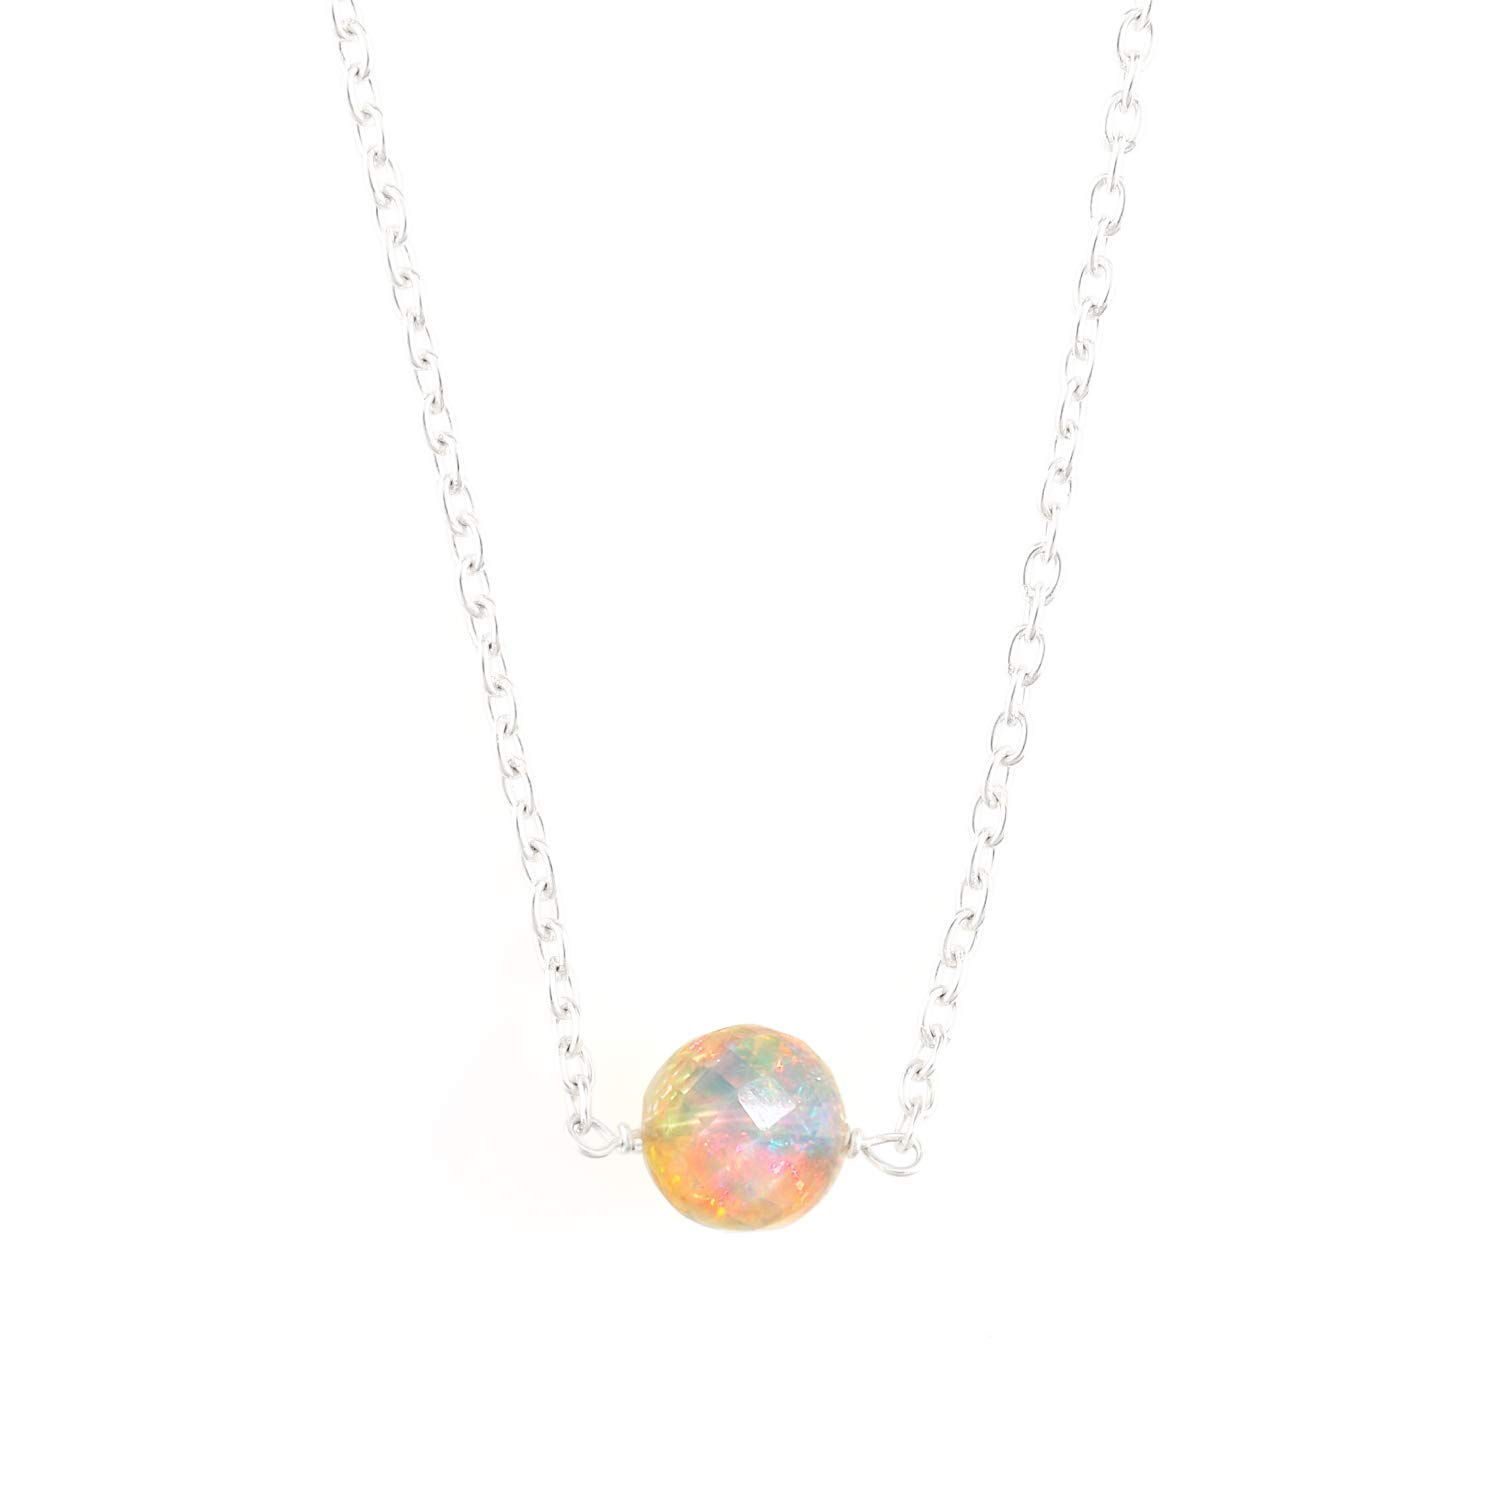 Anniversary gifts October Birthstone Dainty Crystals Necklace for Birthday Natural Opal Beaded Crystals Necklace Healing Chakra Handmade Jewelry for Women Sterling Silver Chain Necklace 18 Inch